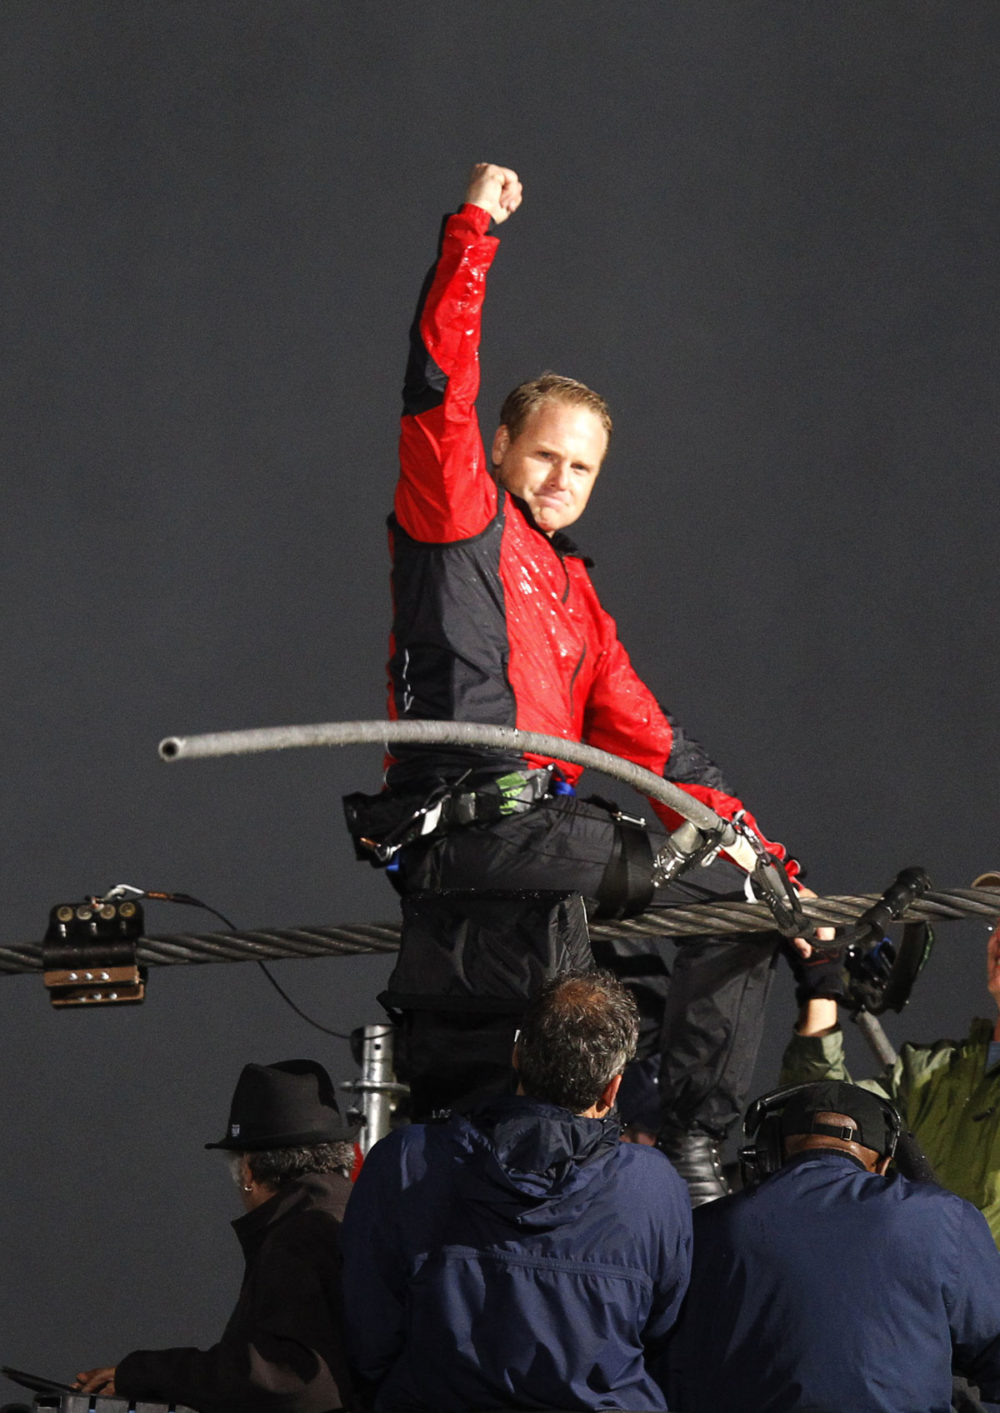 Wallenda campaigned for two years to be allowed to walk across the falls. He now plans to walk over the Grand Canyon. (Reuters)